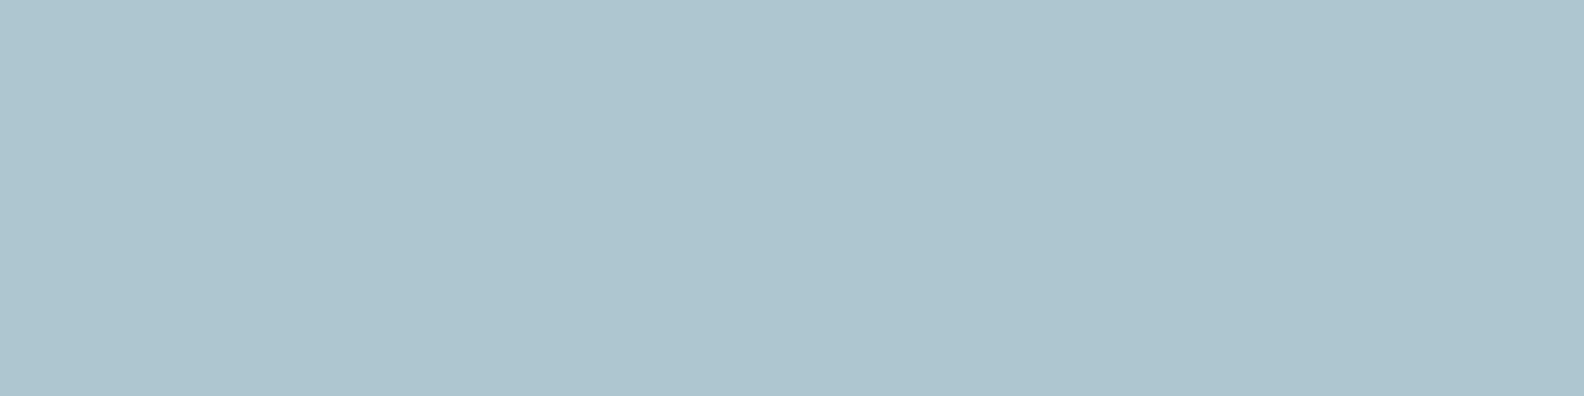 1584x396 Pastel Blue Solid Color Background